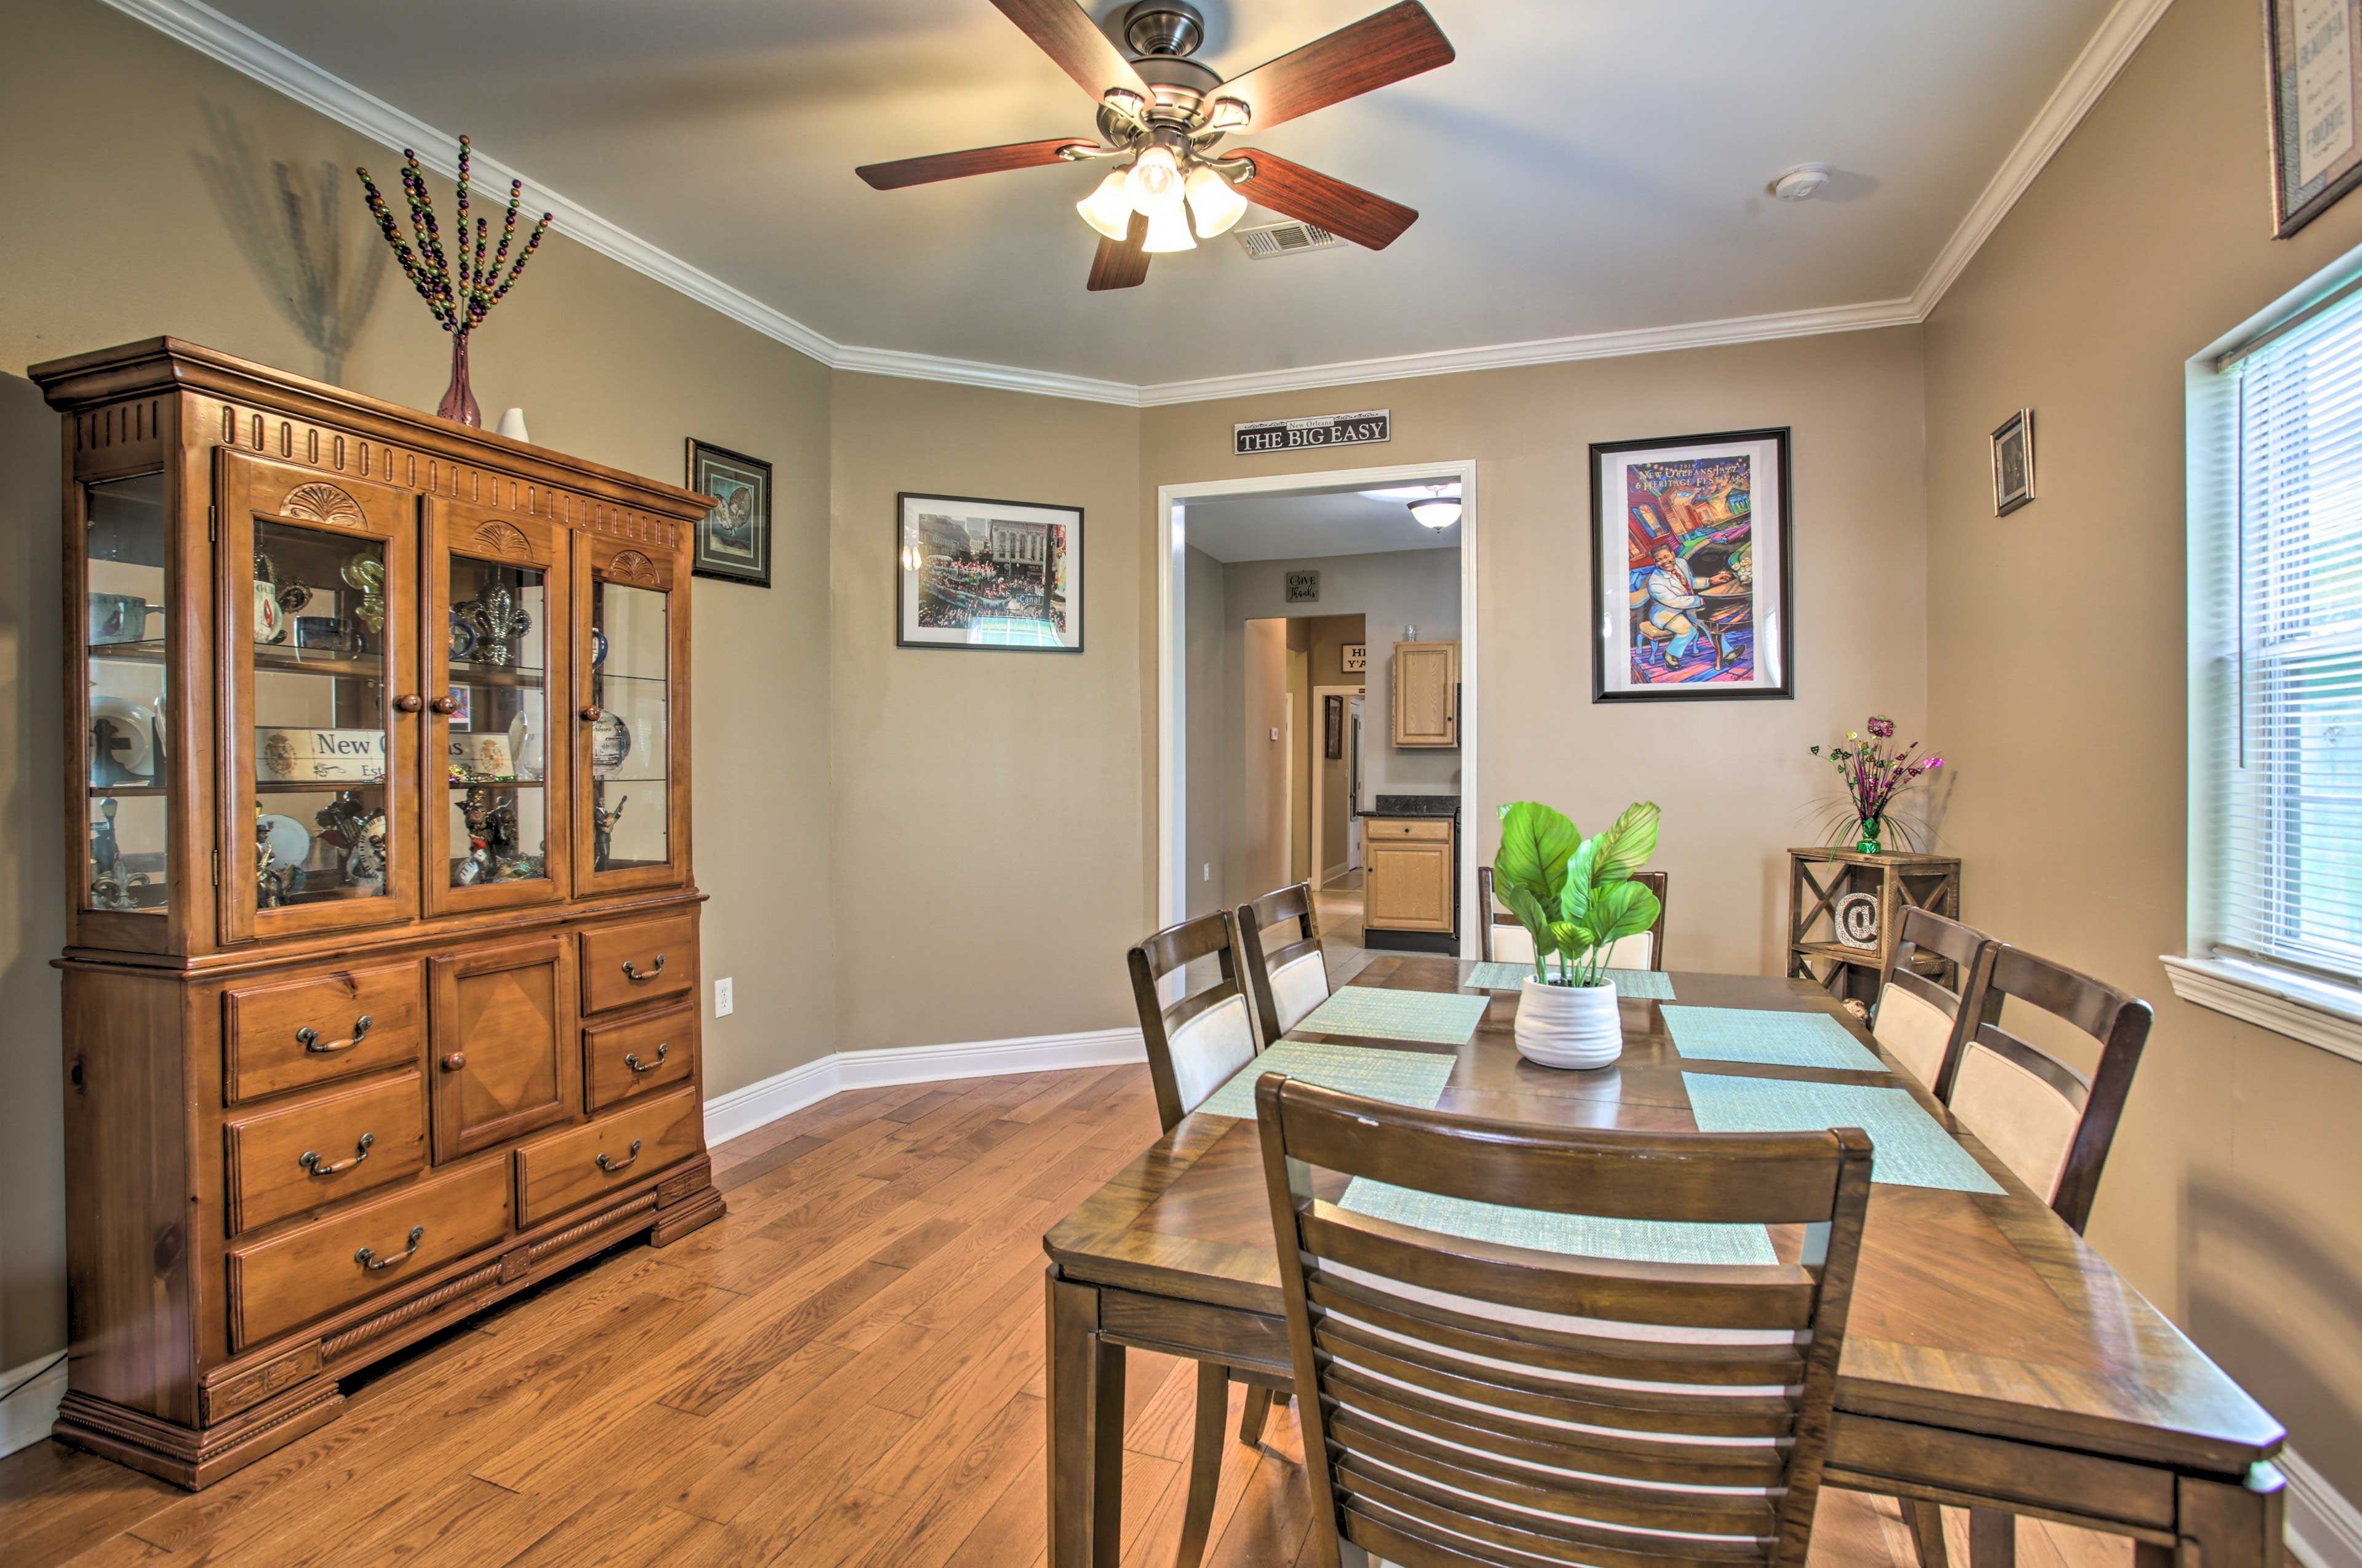 New Orleans Vacation Rental | 4BR | 3BA | 2,200 Sq Ft | Stairs Required